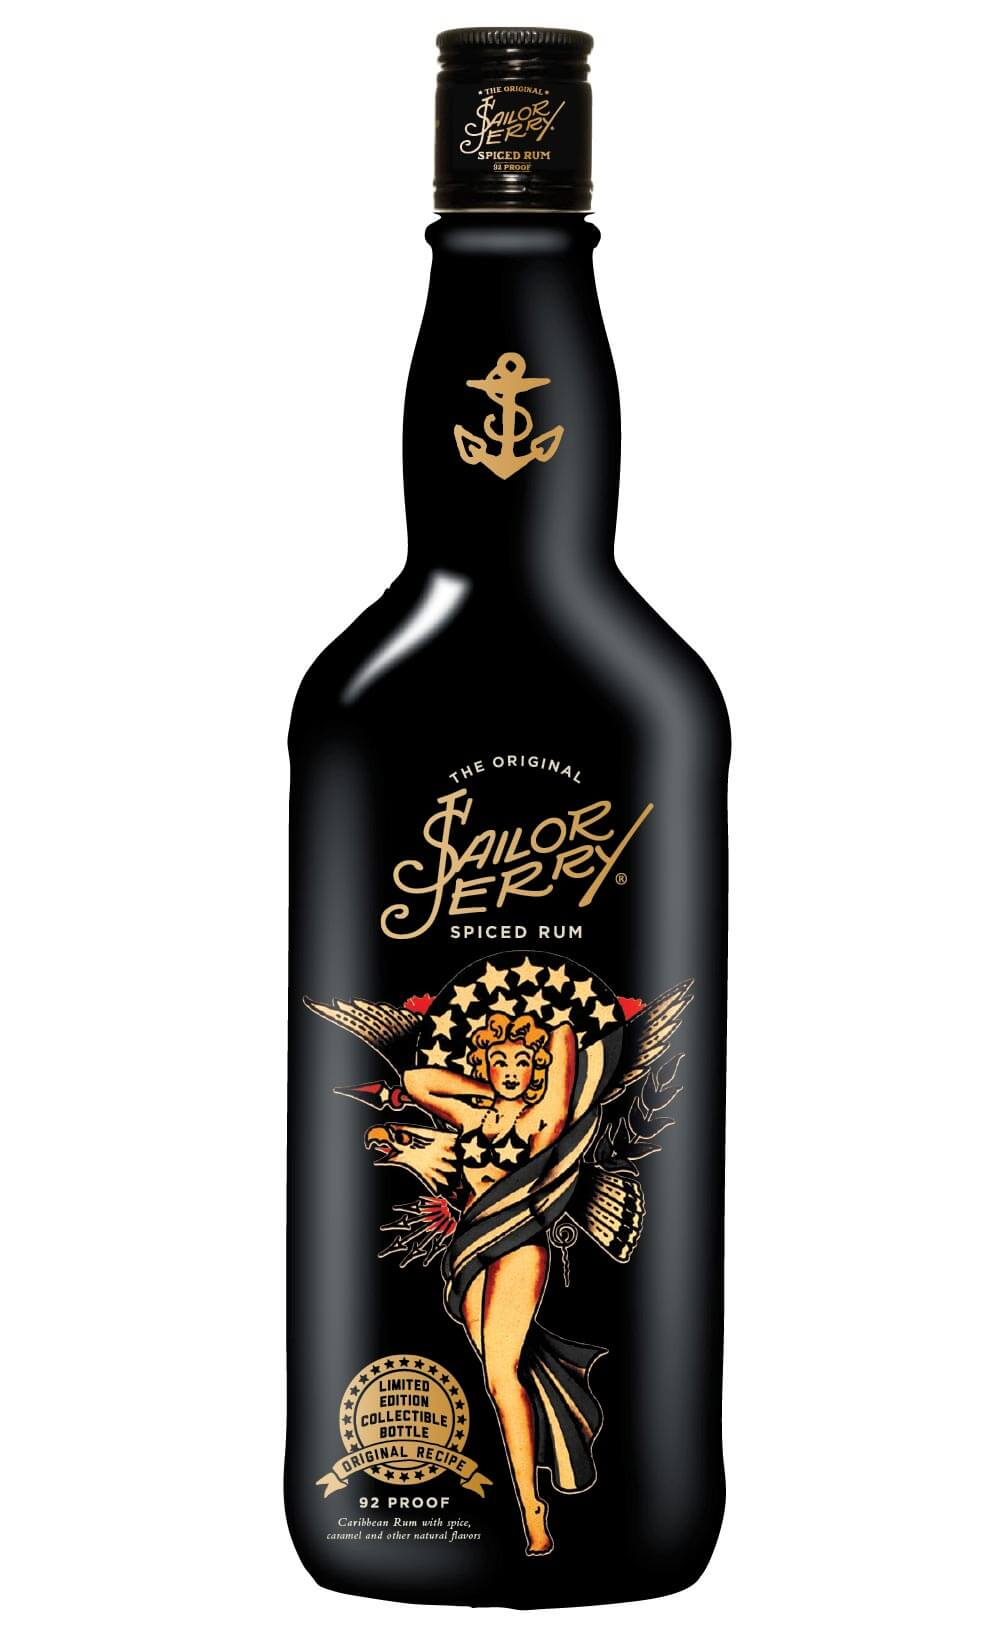 Sailor Jerry Rum Limited Edition Bottle for 4th of July